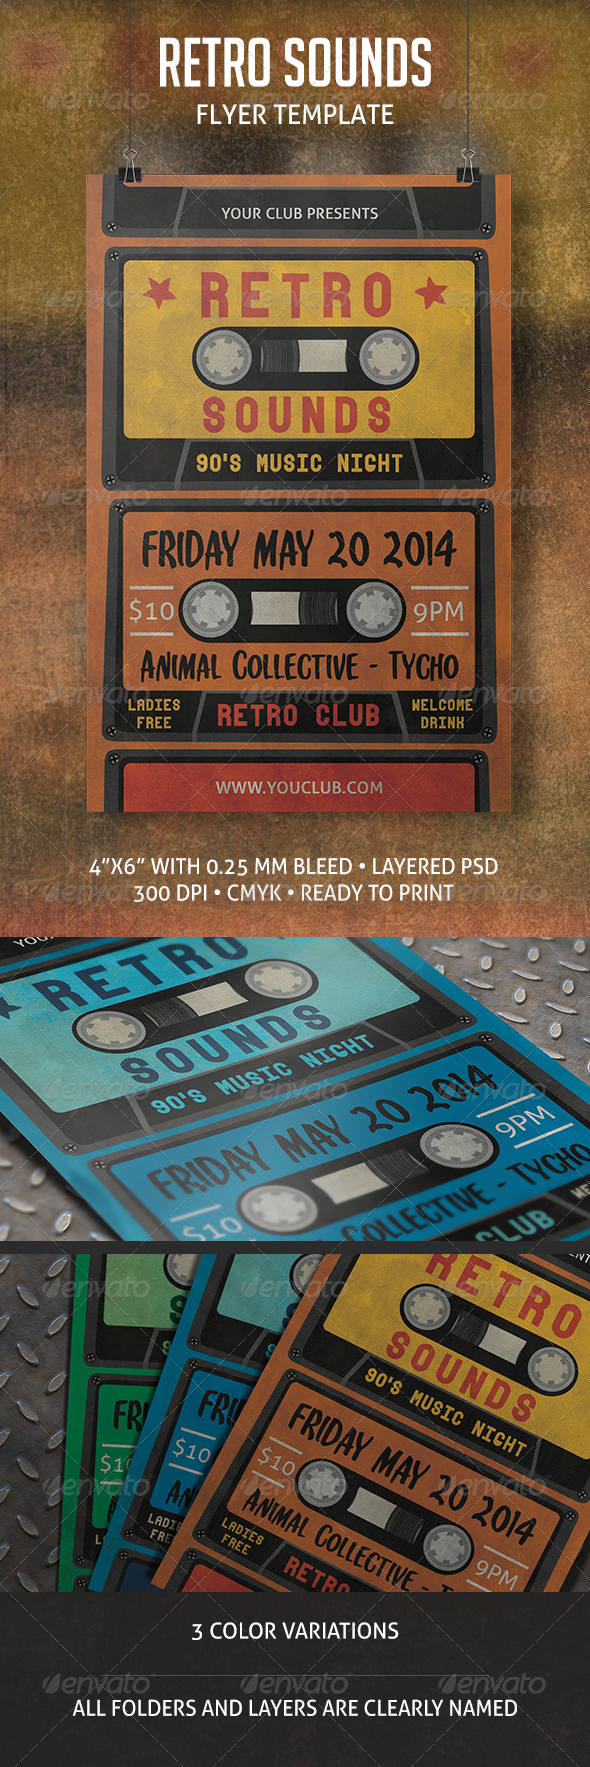 Retro Sounds Flyer - Events Flyers